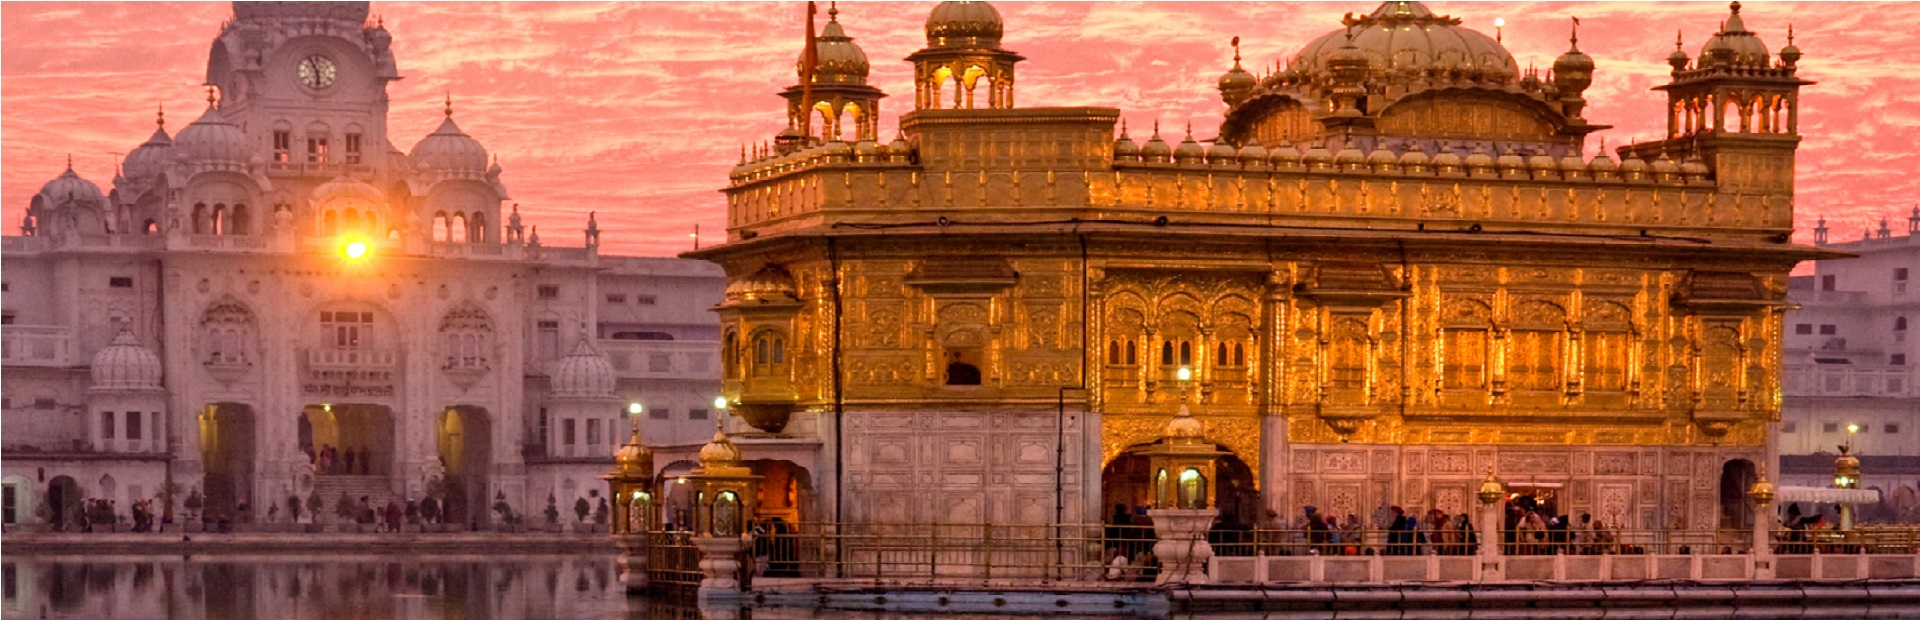 India 2012 Golden Temple Amrit dreamstime_m_6466698